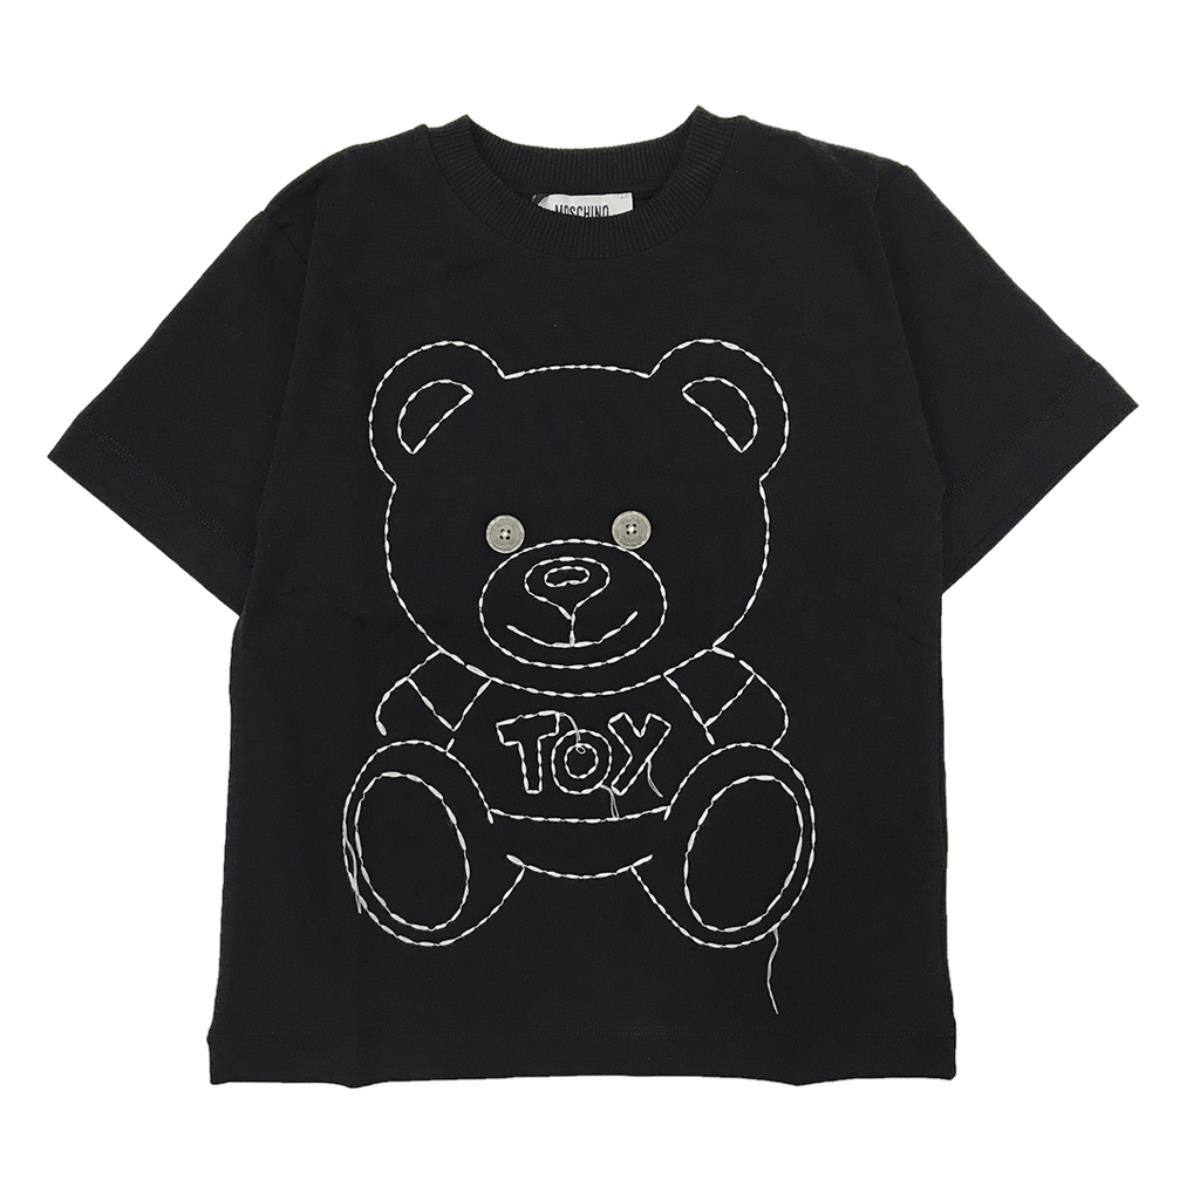 b2b8b0bf HOME / CATEGORIES GIRL / CLOTHING / MAXI T-SHIRT / EMBROIDERED CHILD'S T- SHIRT /